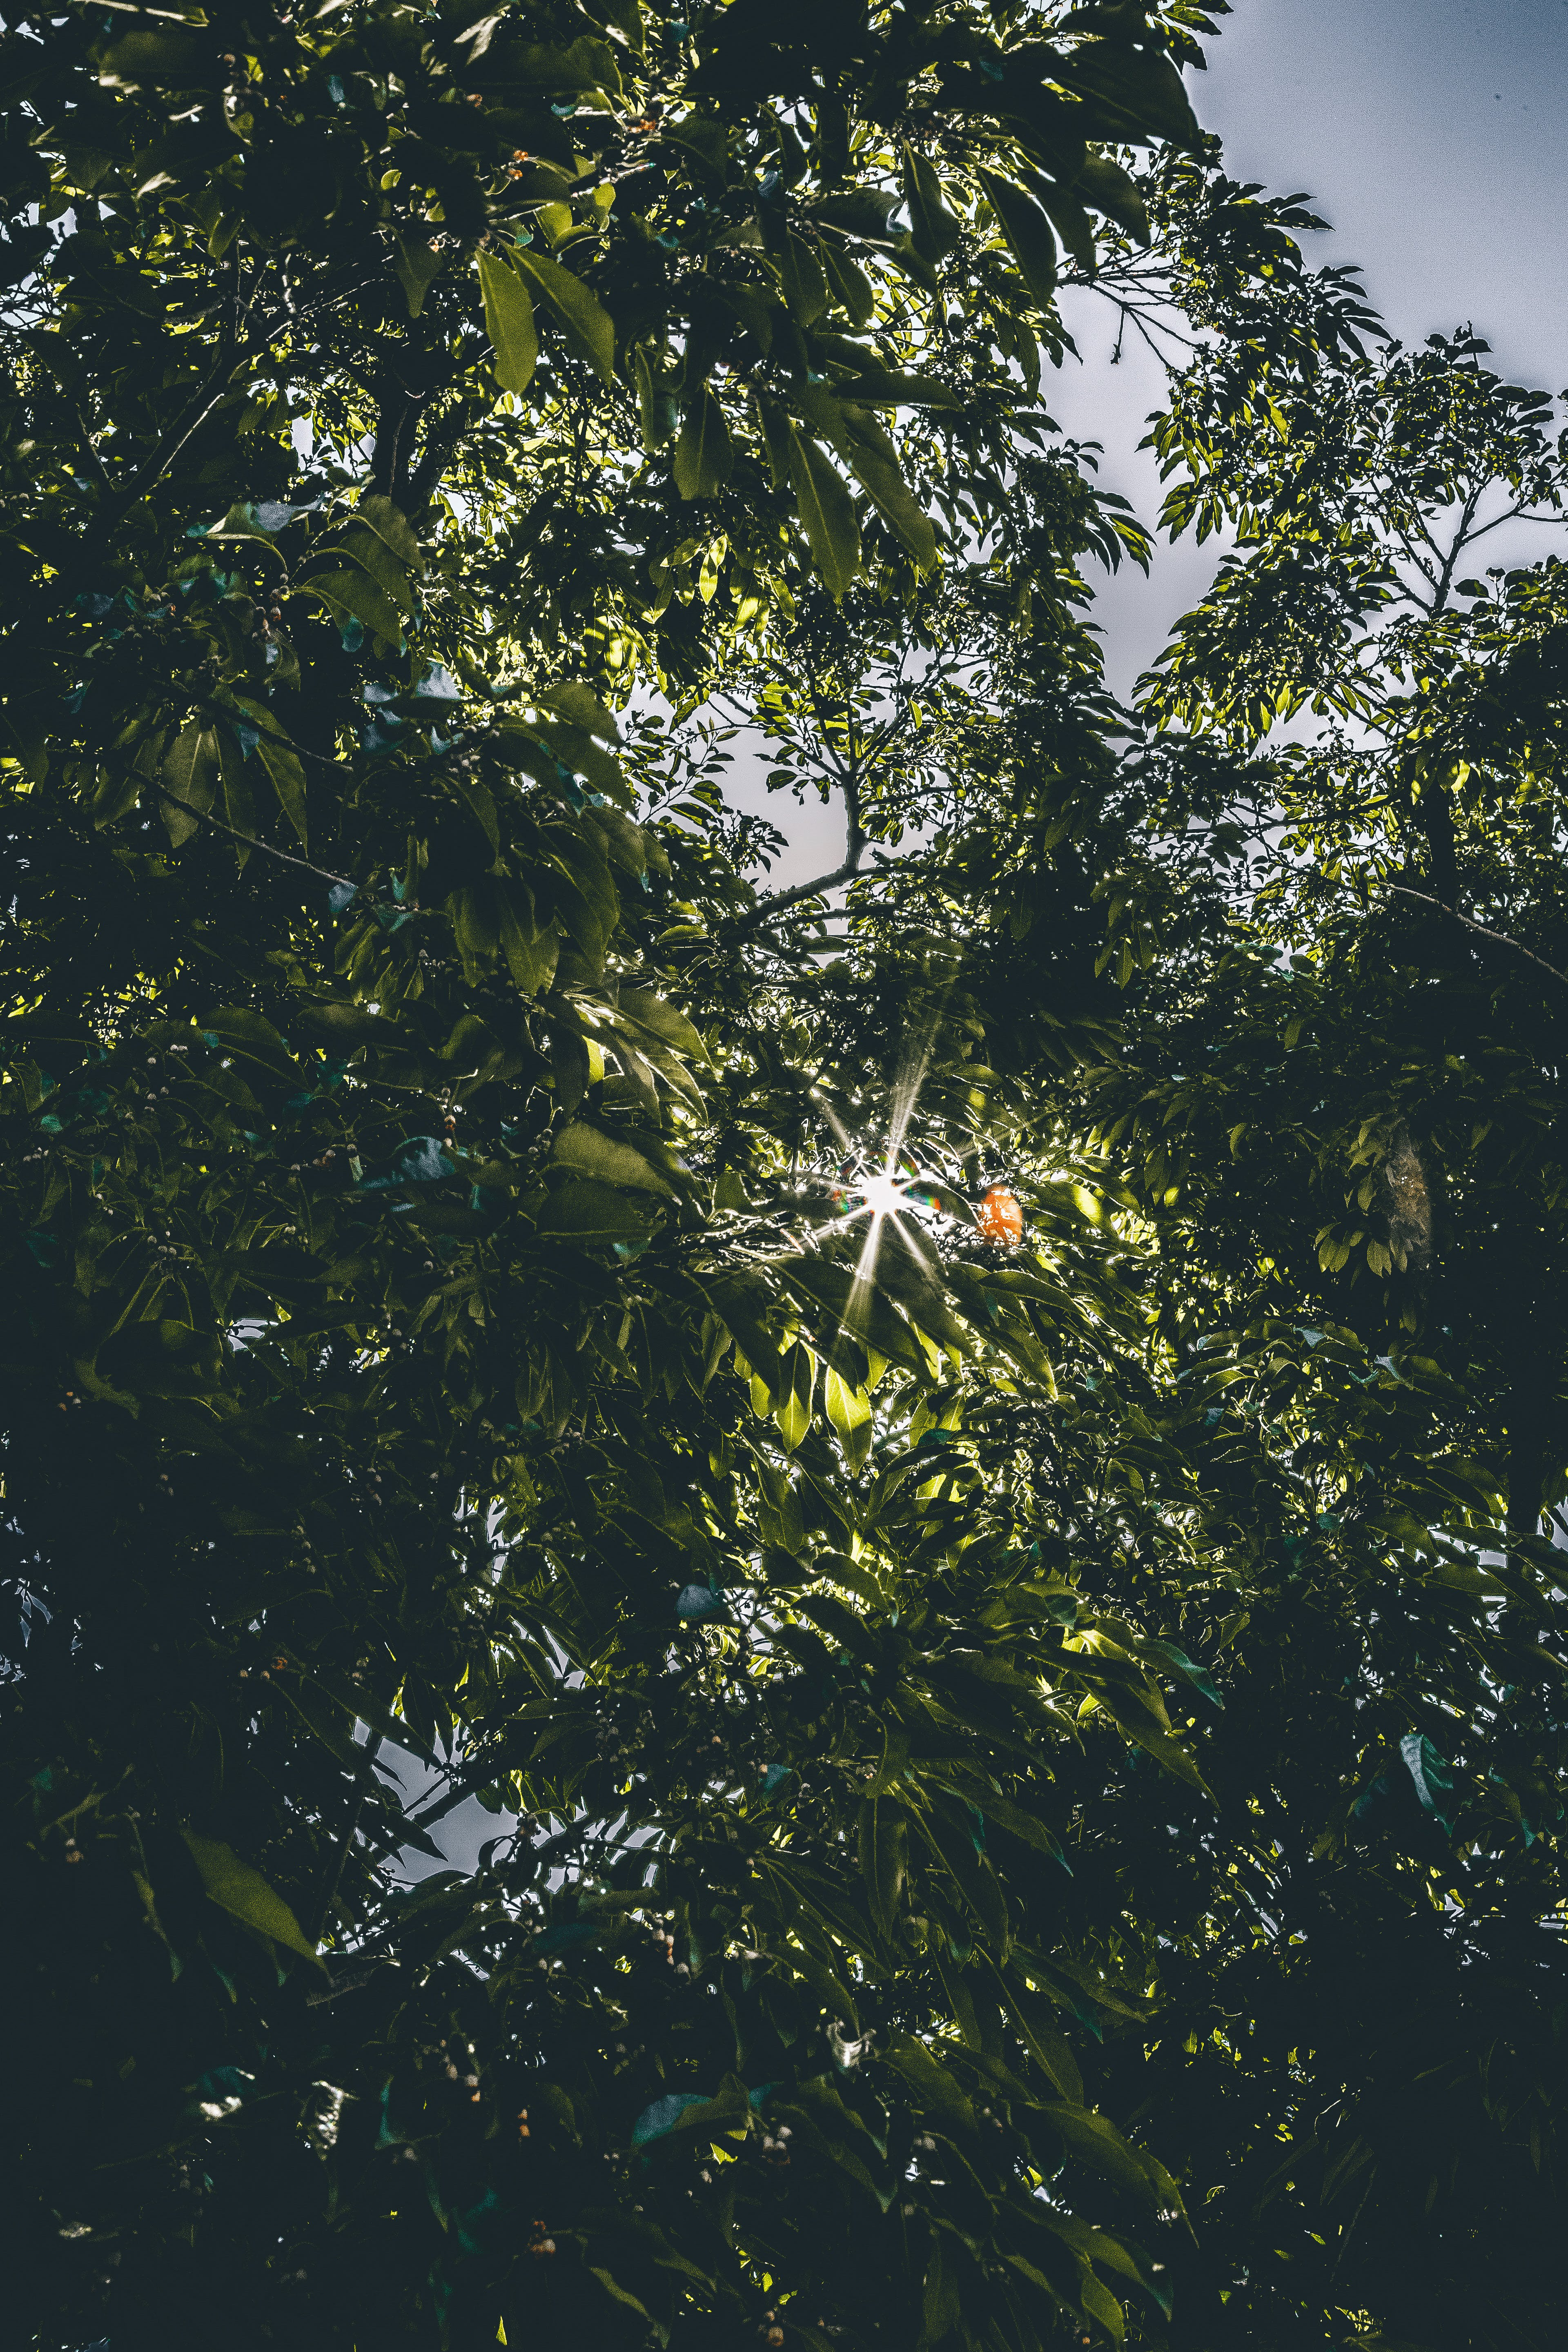 Worms Eye Photography of Green Leafed Tree With Sunlight